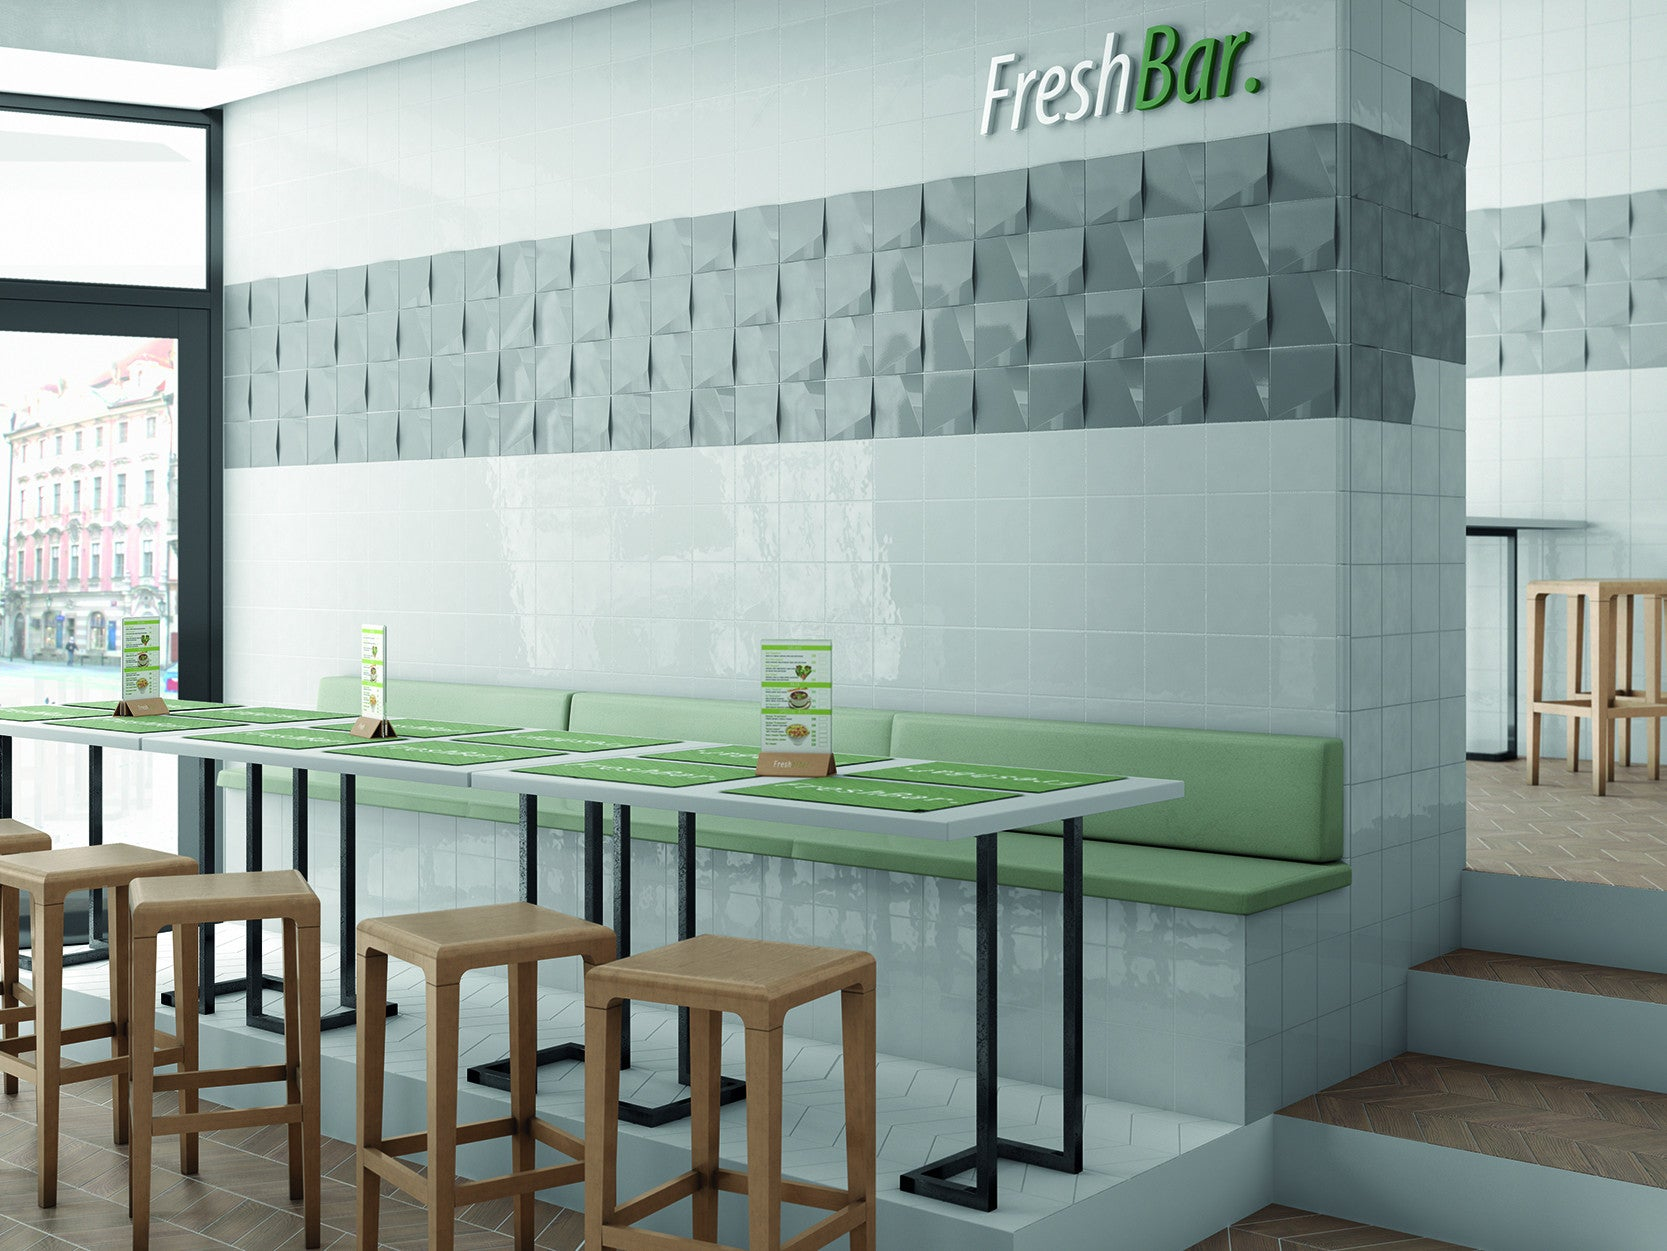 Creative & Modern Floor & Wall Tiles for Cafes, Bars & Restaurants ...